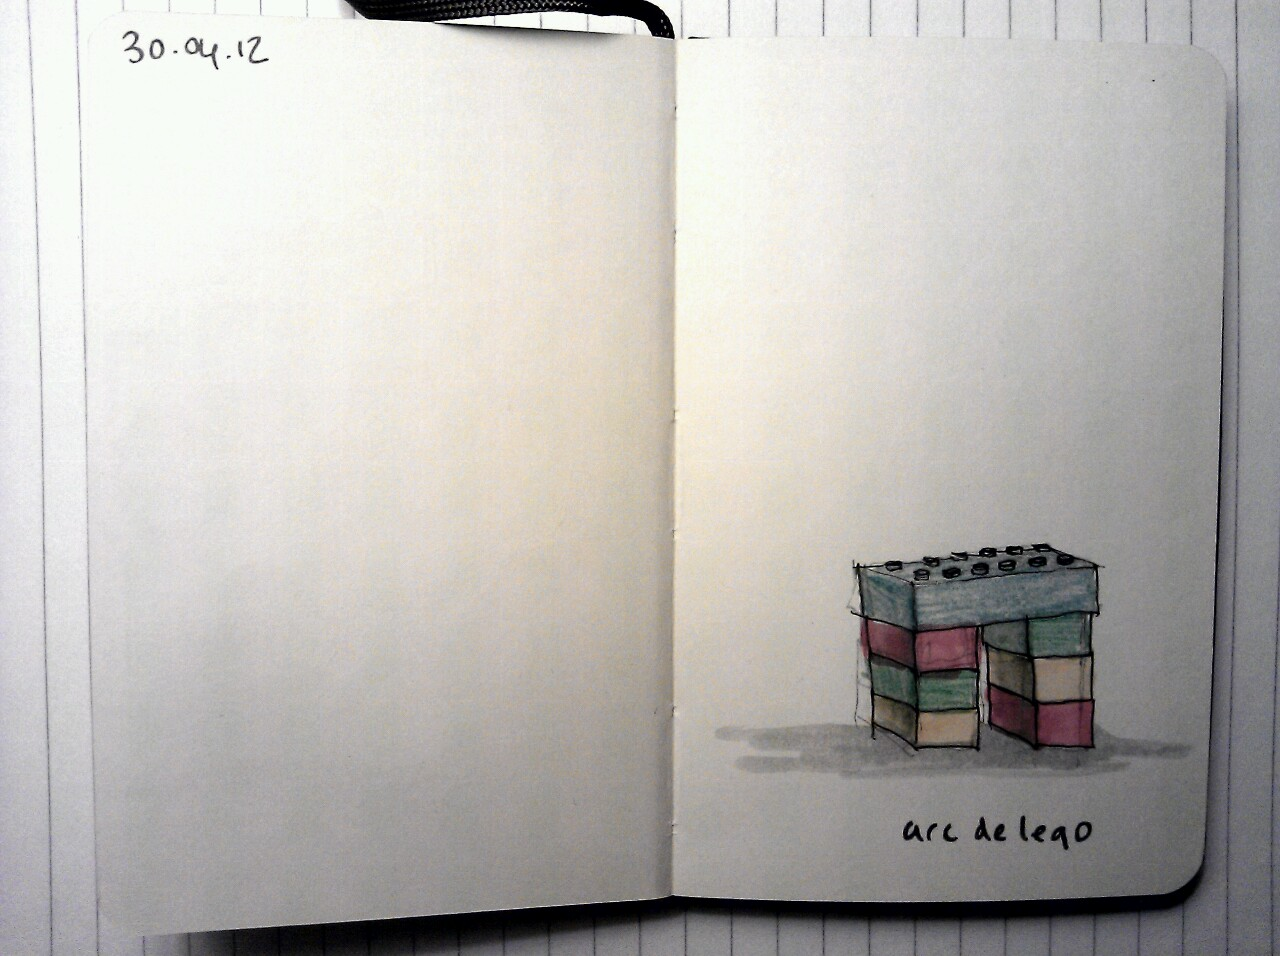 365 drawings later … day 90 … arc du lego